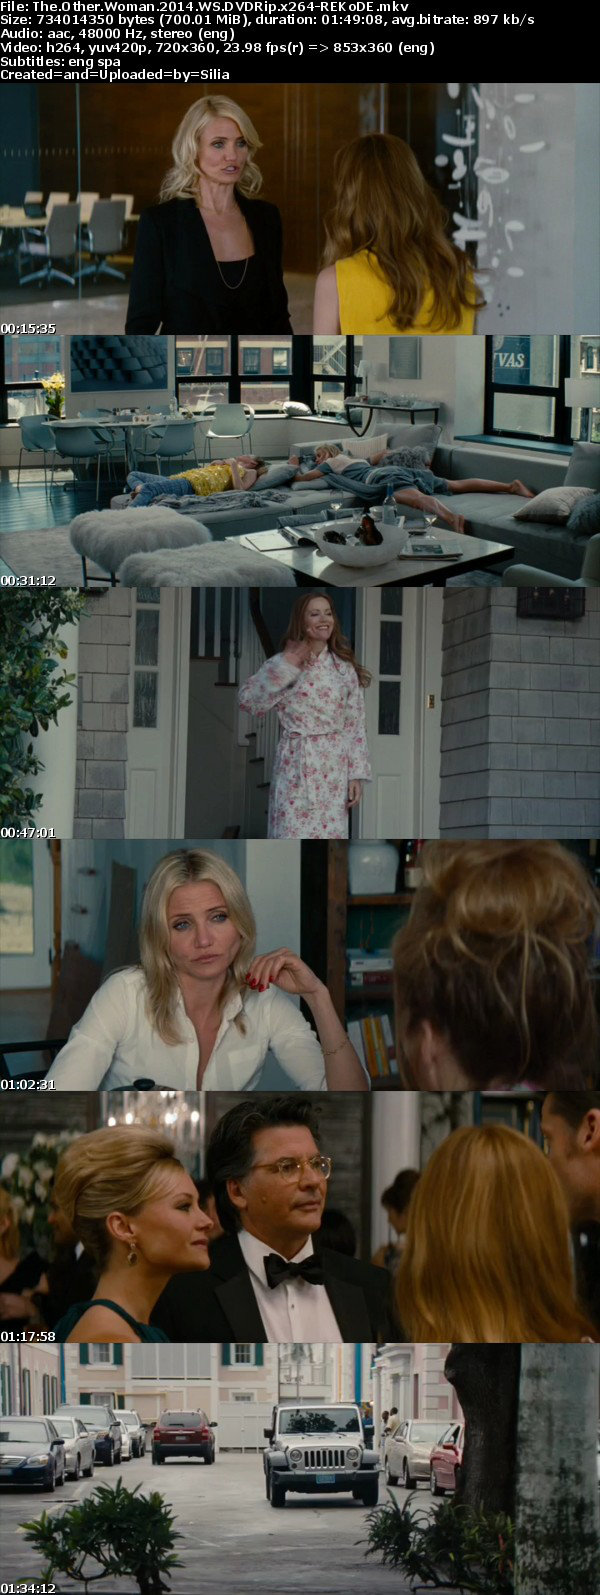 The Other Woman 2014 WS DVDRip x264-REKoDE